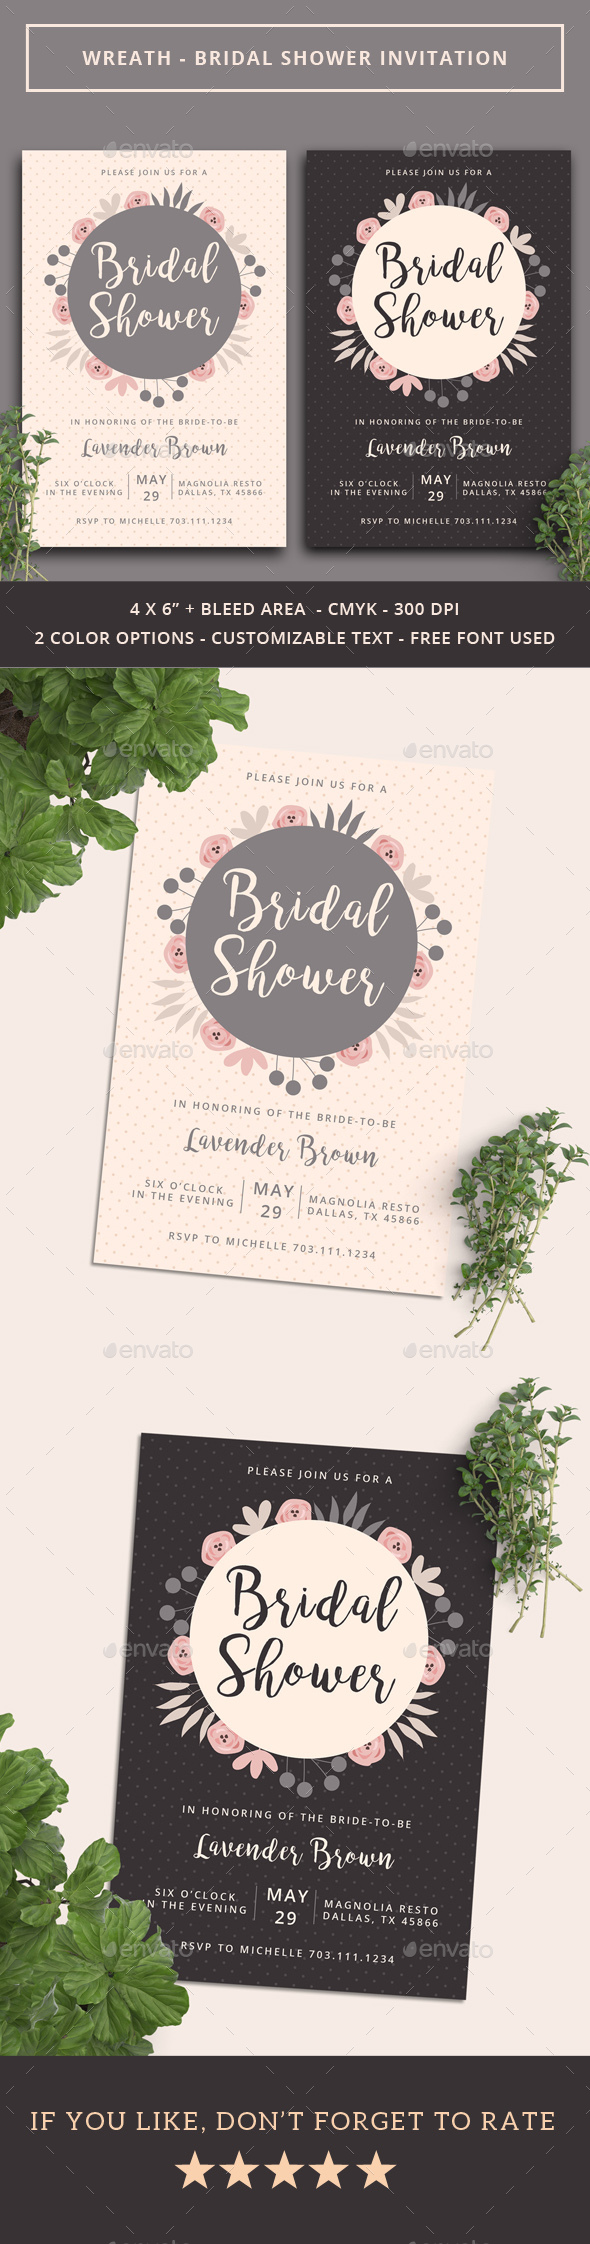 Wreath - Bridal Shower Invitation